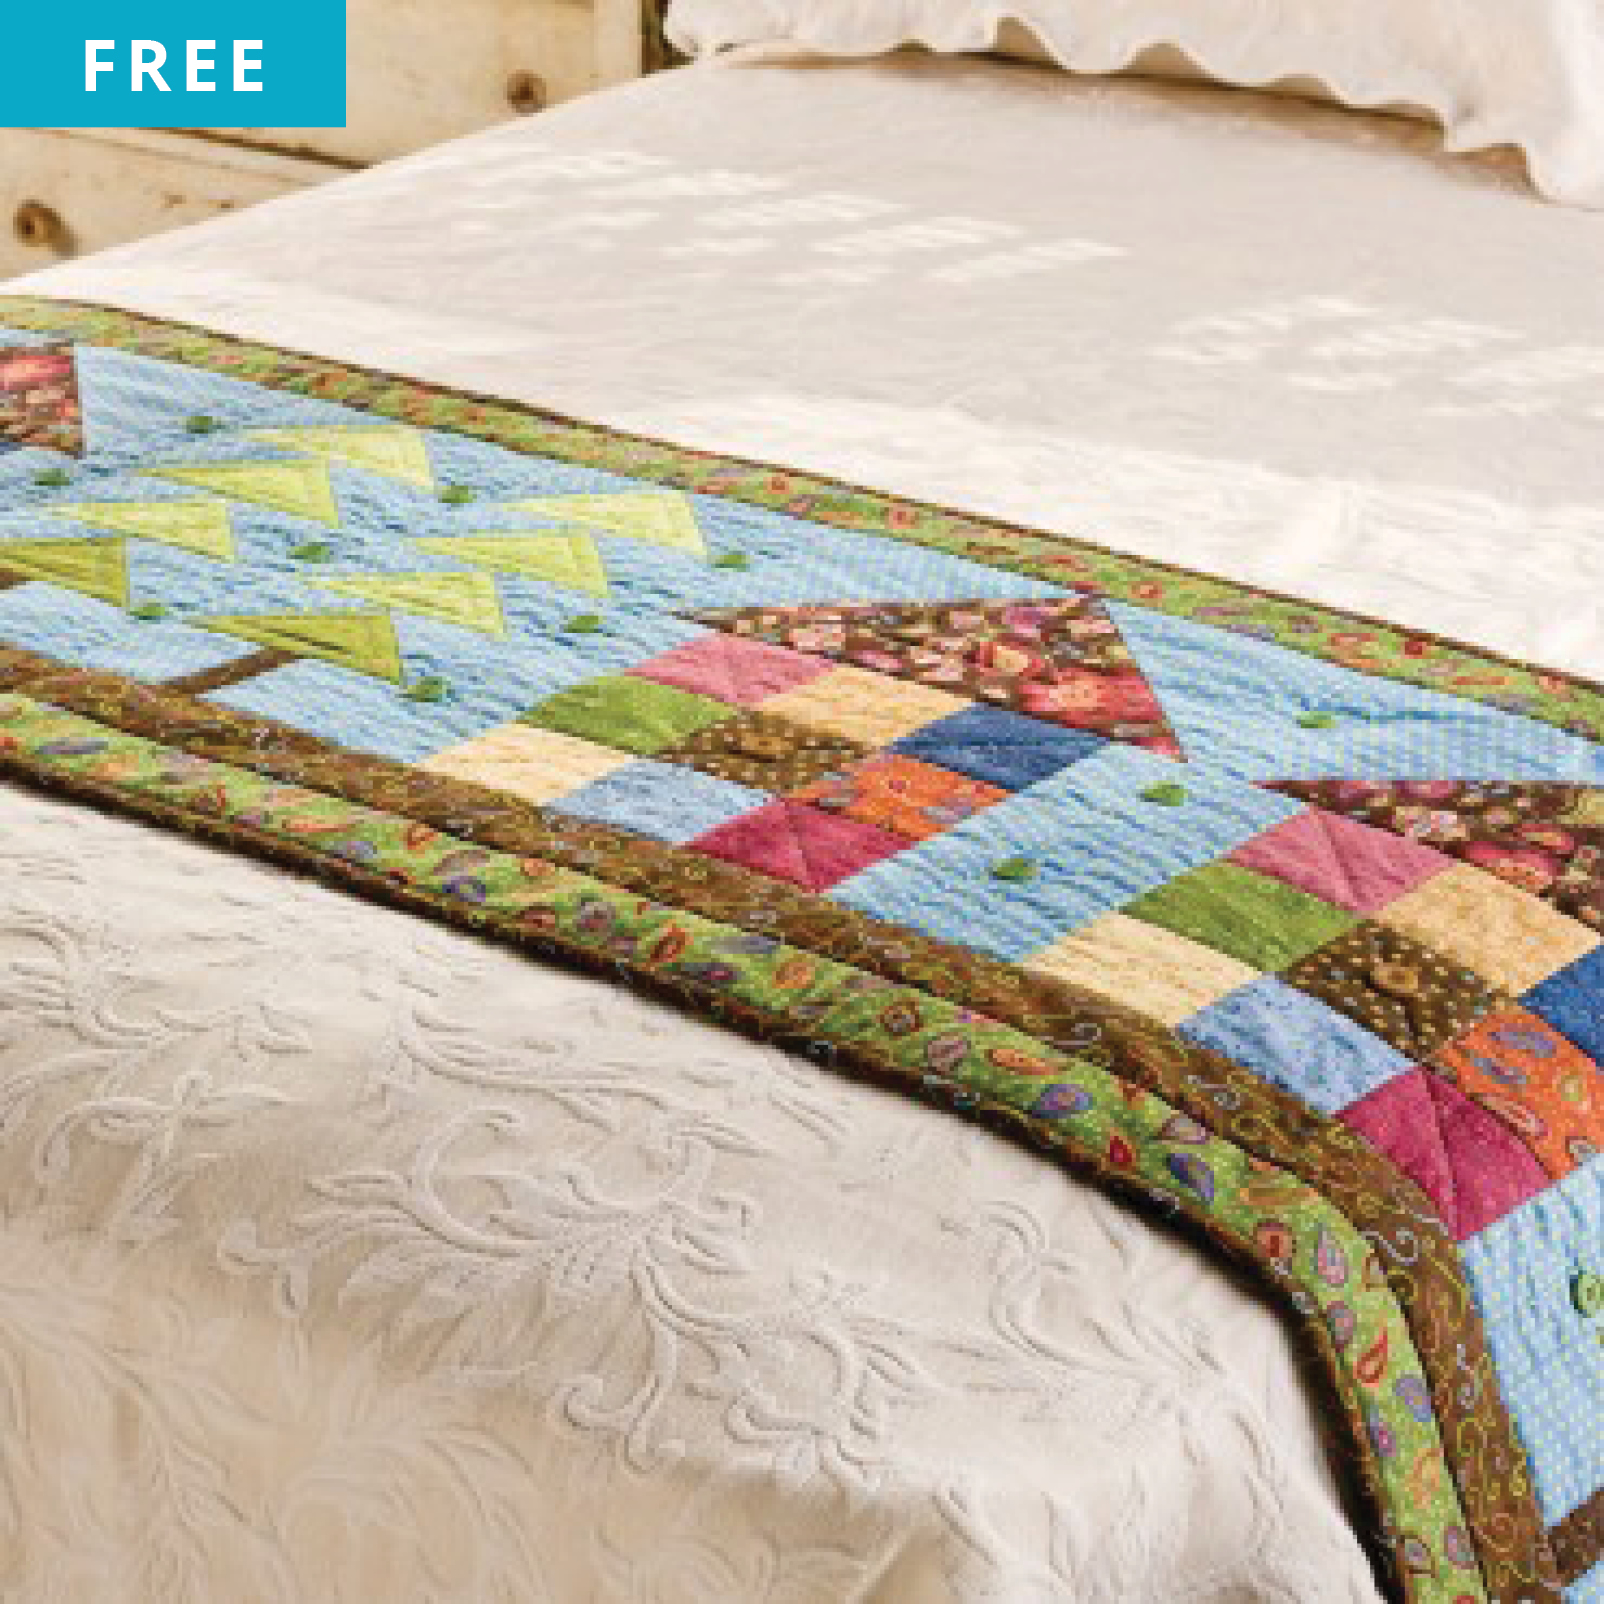 Free Quilt Pattern - Row House Bed Runner